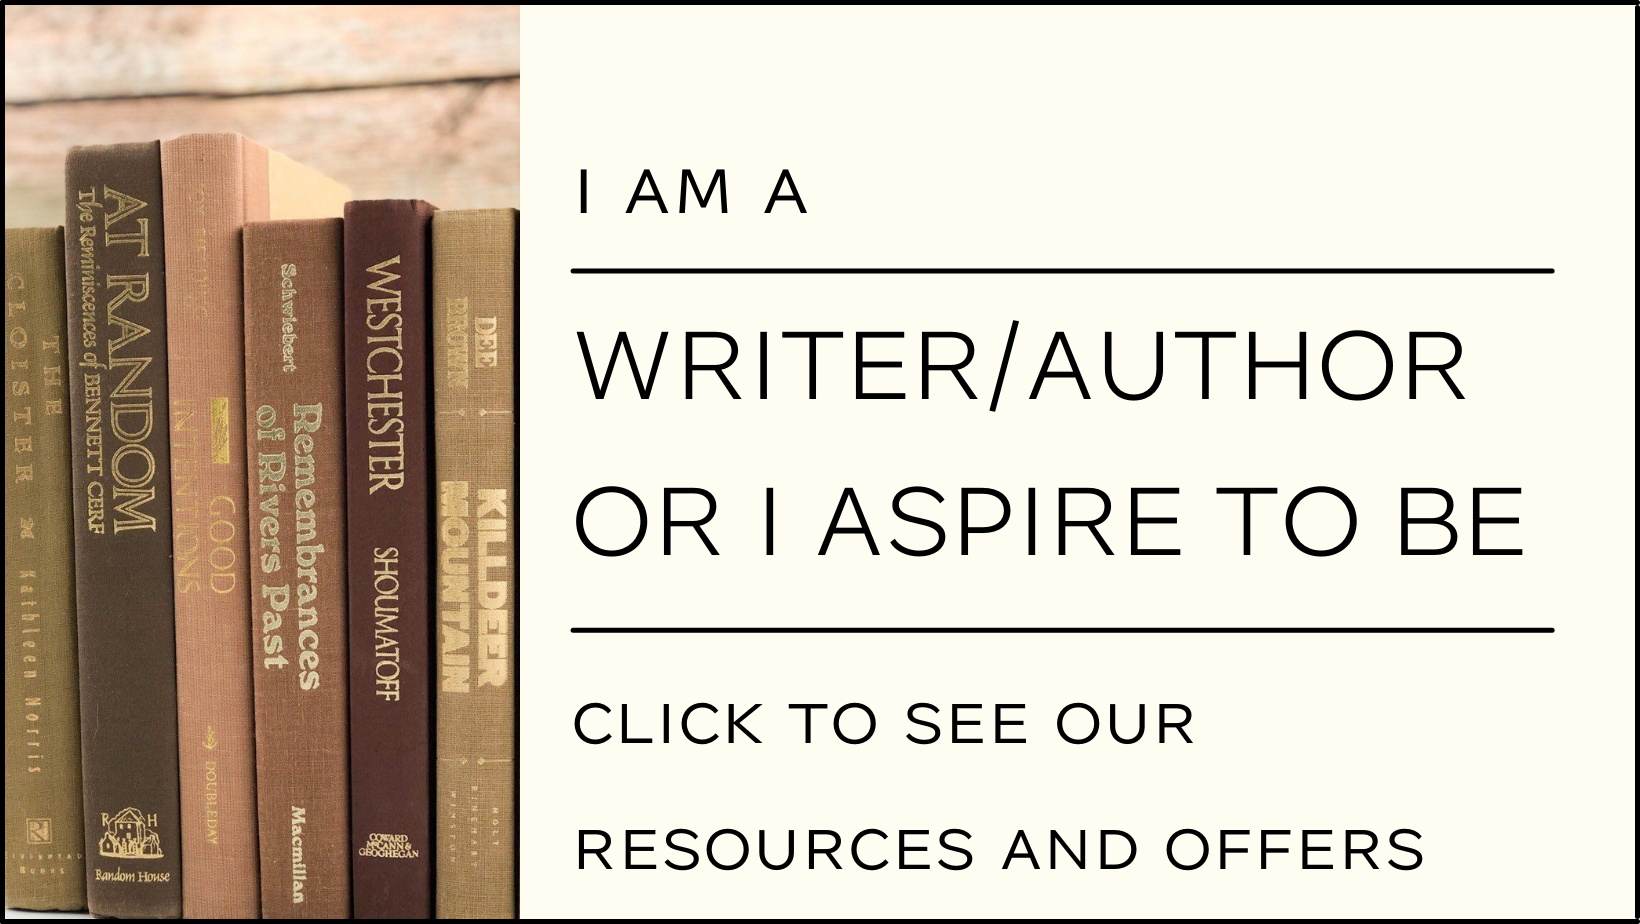 Writing Resources for Writers and Authors